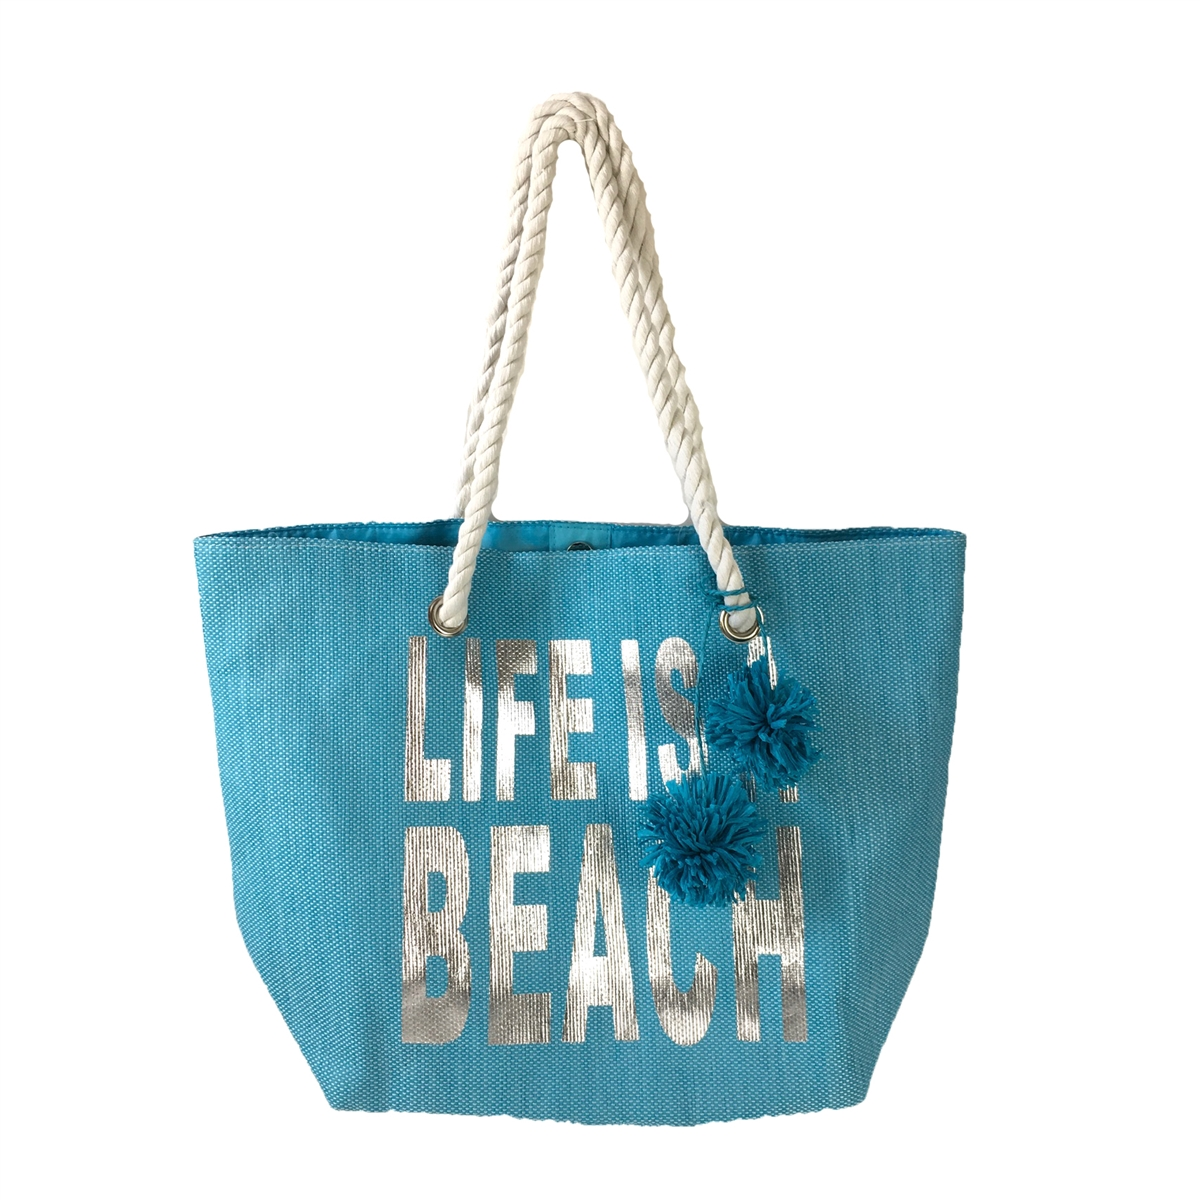 Magid 'Life is a Beach' Tote Beach Bag, Aqua